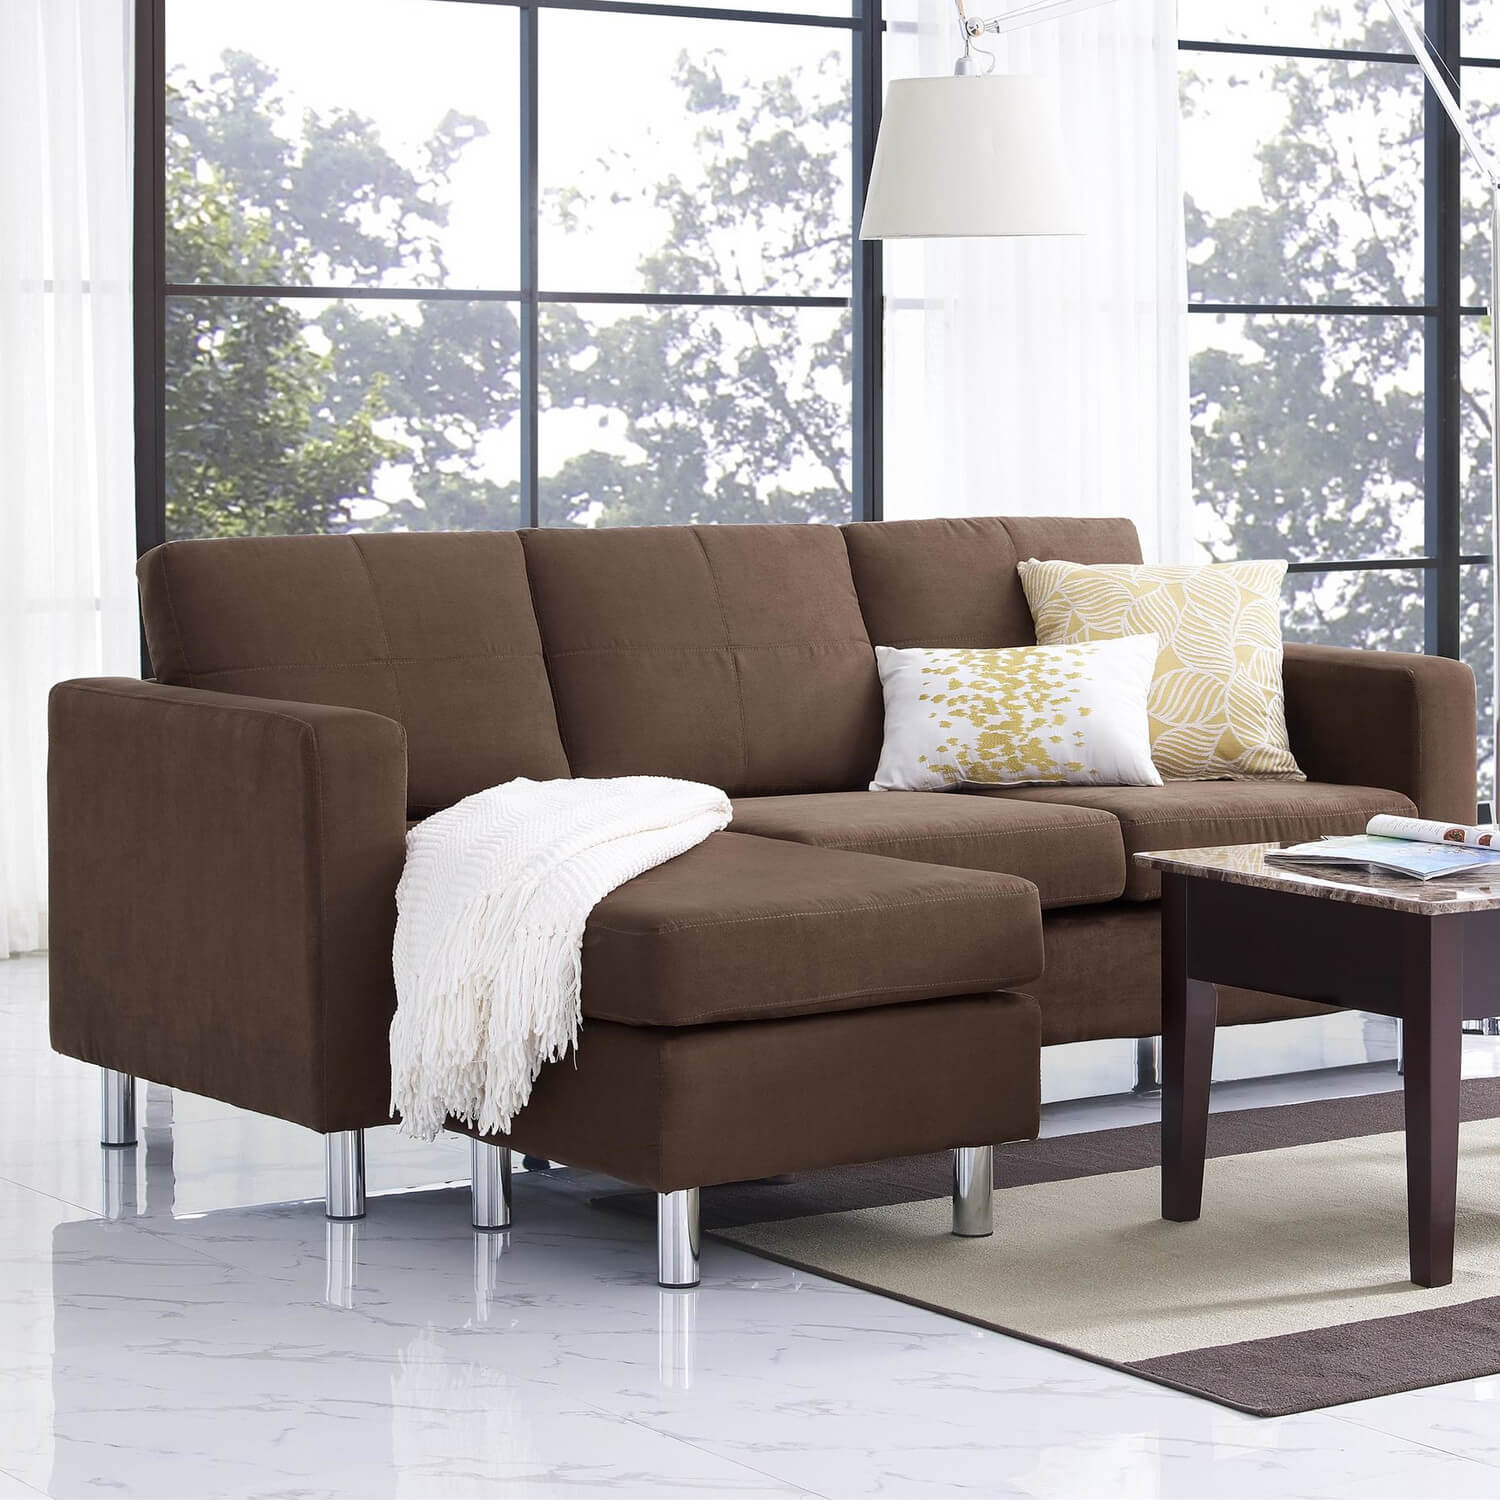 Lovely Sectional Sofas Under 500 22 For Sofa Design Ideas with Sectional Sofas Under 500